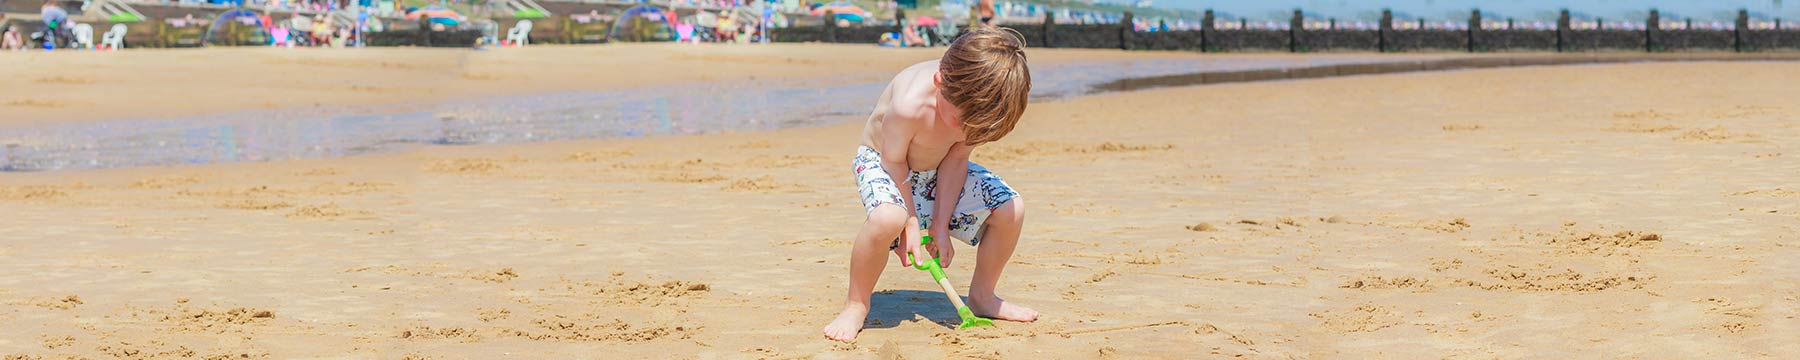 A boy digging in the sand